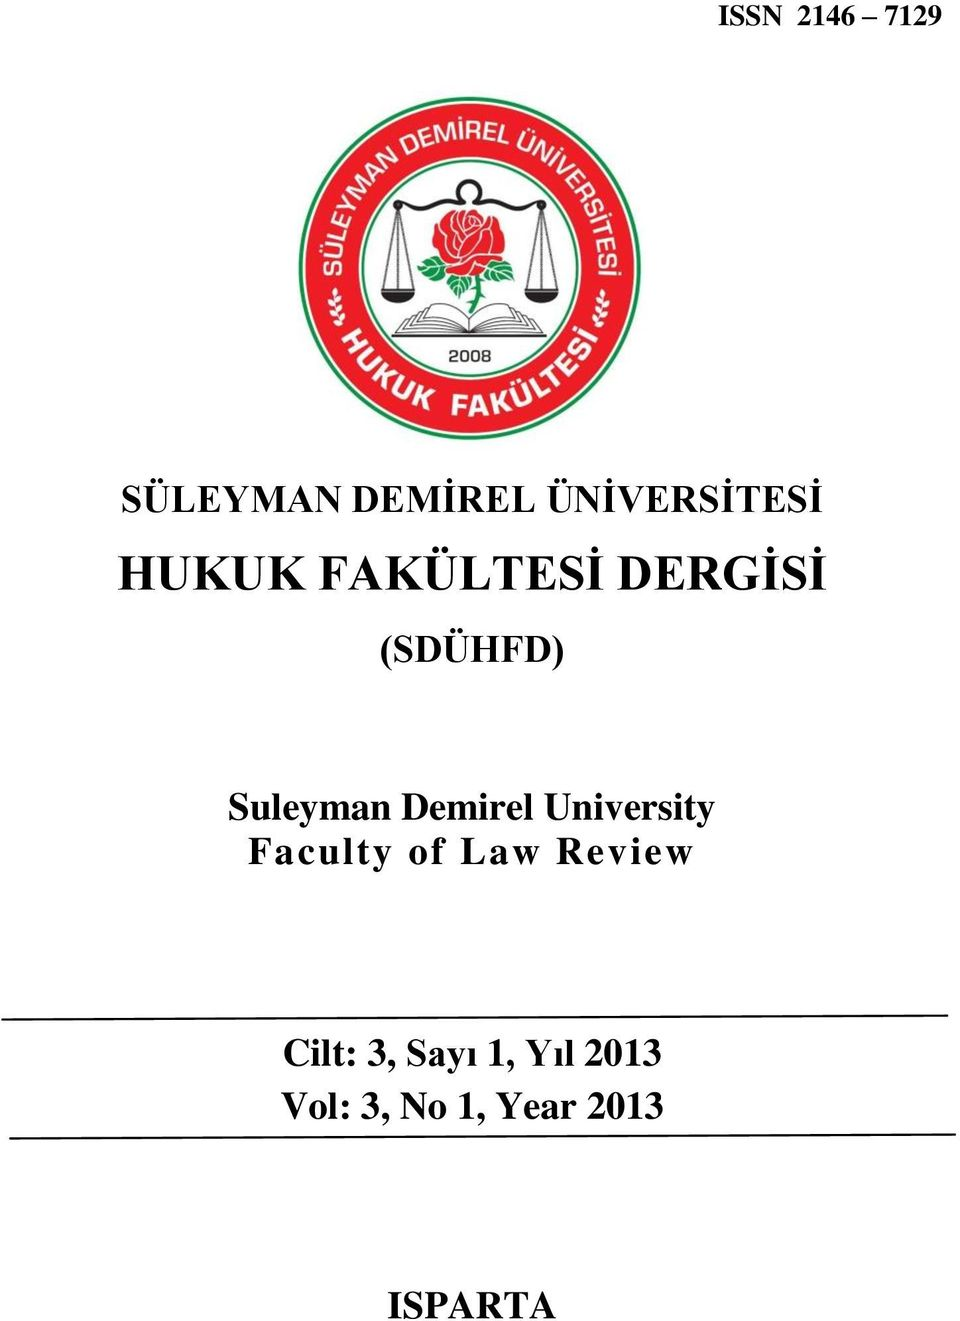 Demirel University Faculty of Law Review Cilt: